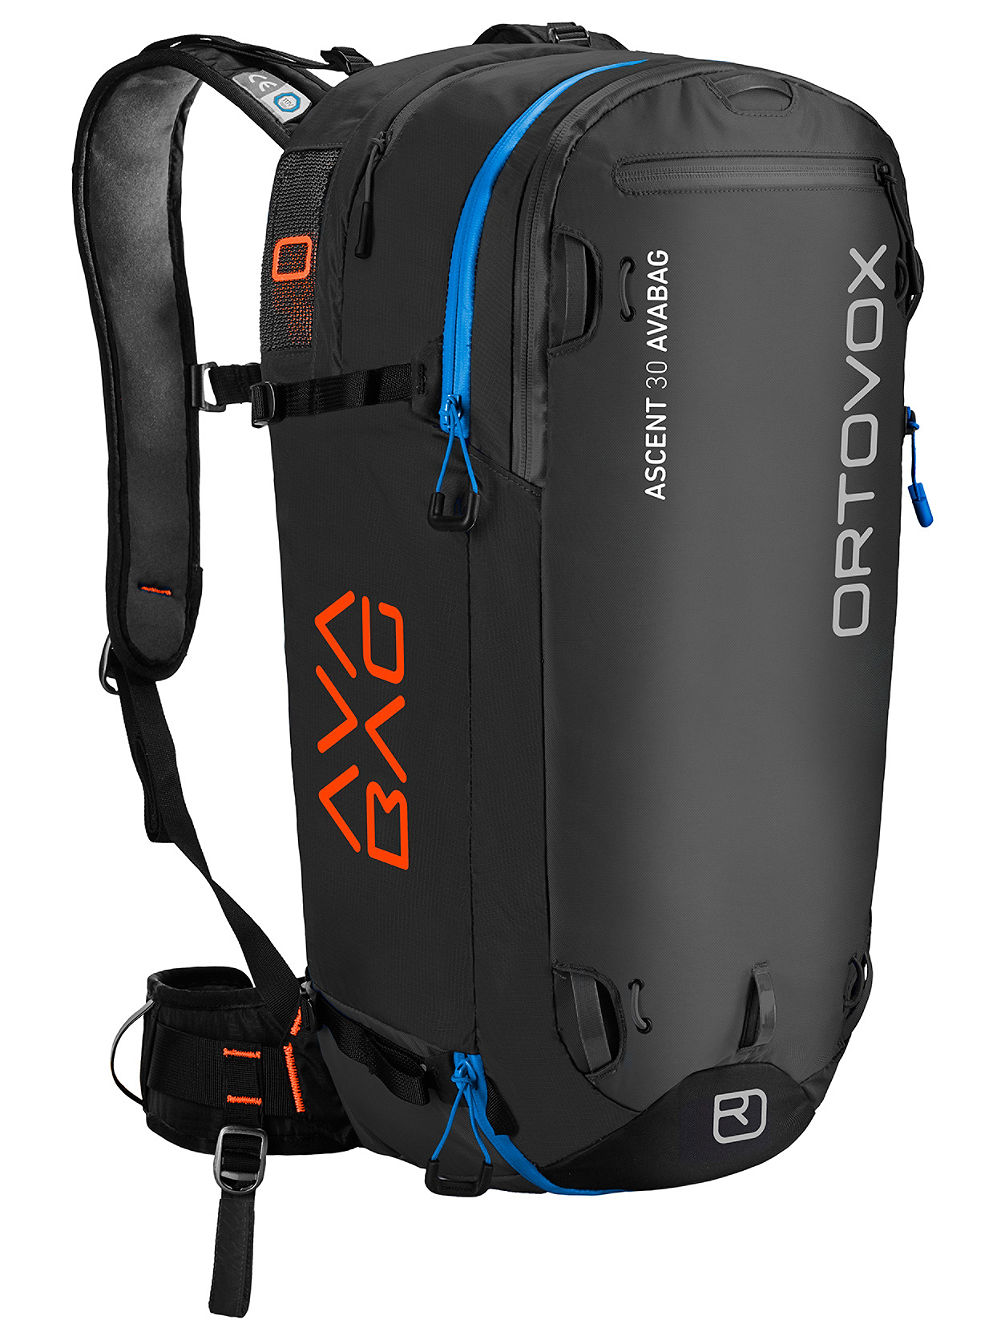 Ascent 30L Avabag Without AVABAG Unit Ryggsekk